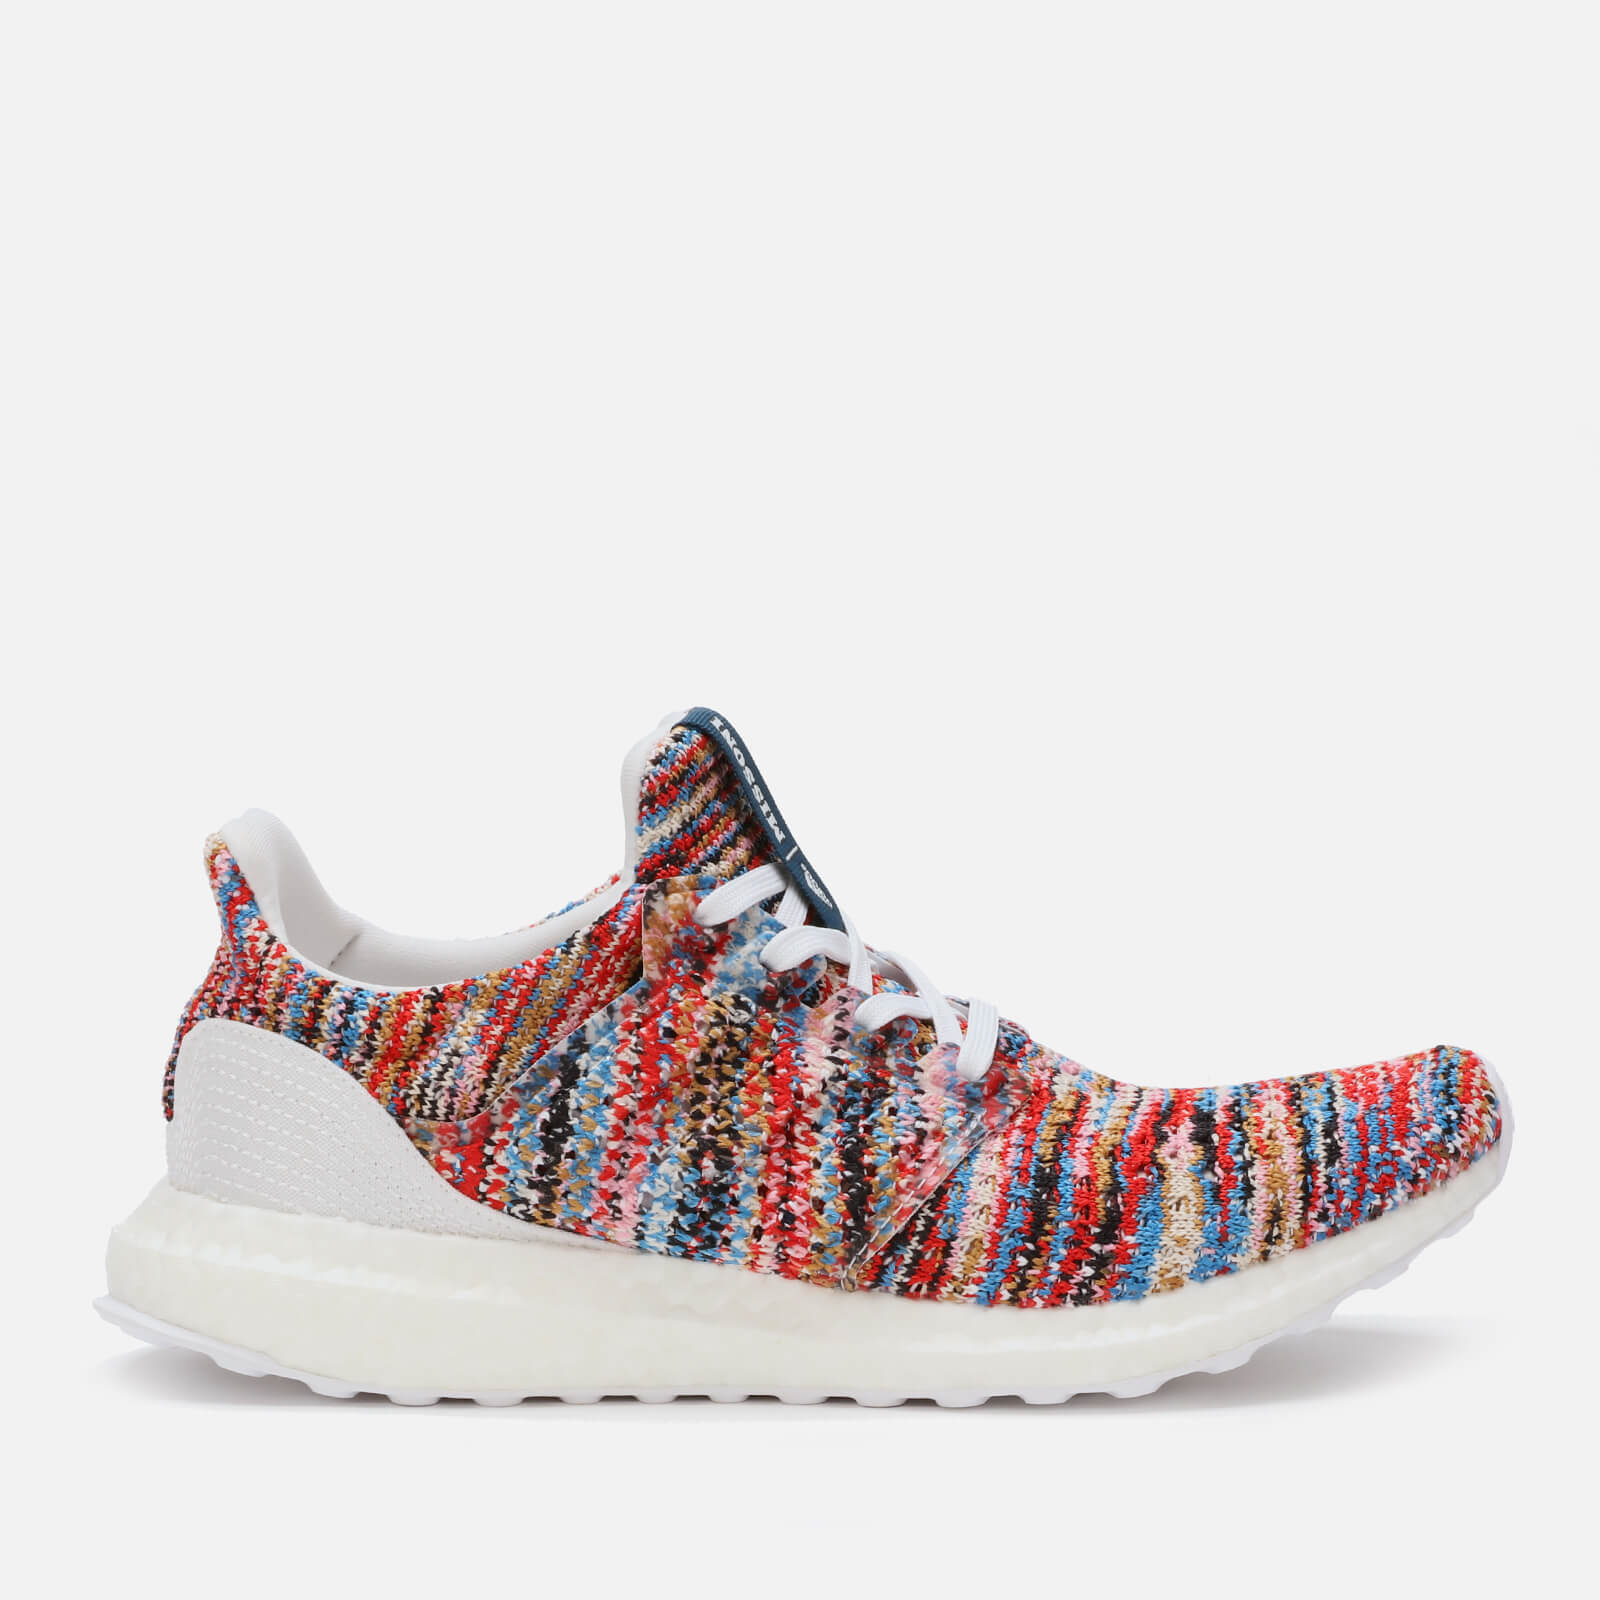 4c698ec899820 adidas X Missoni Women s Ultraboost Clima Trainers - FTWR White Shock Cyan  - Free UK Delivery over £50